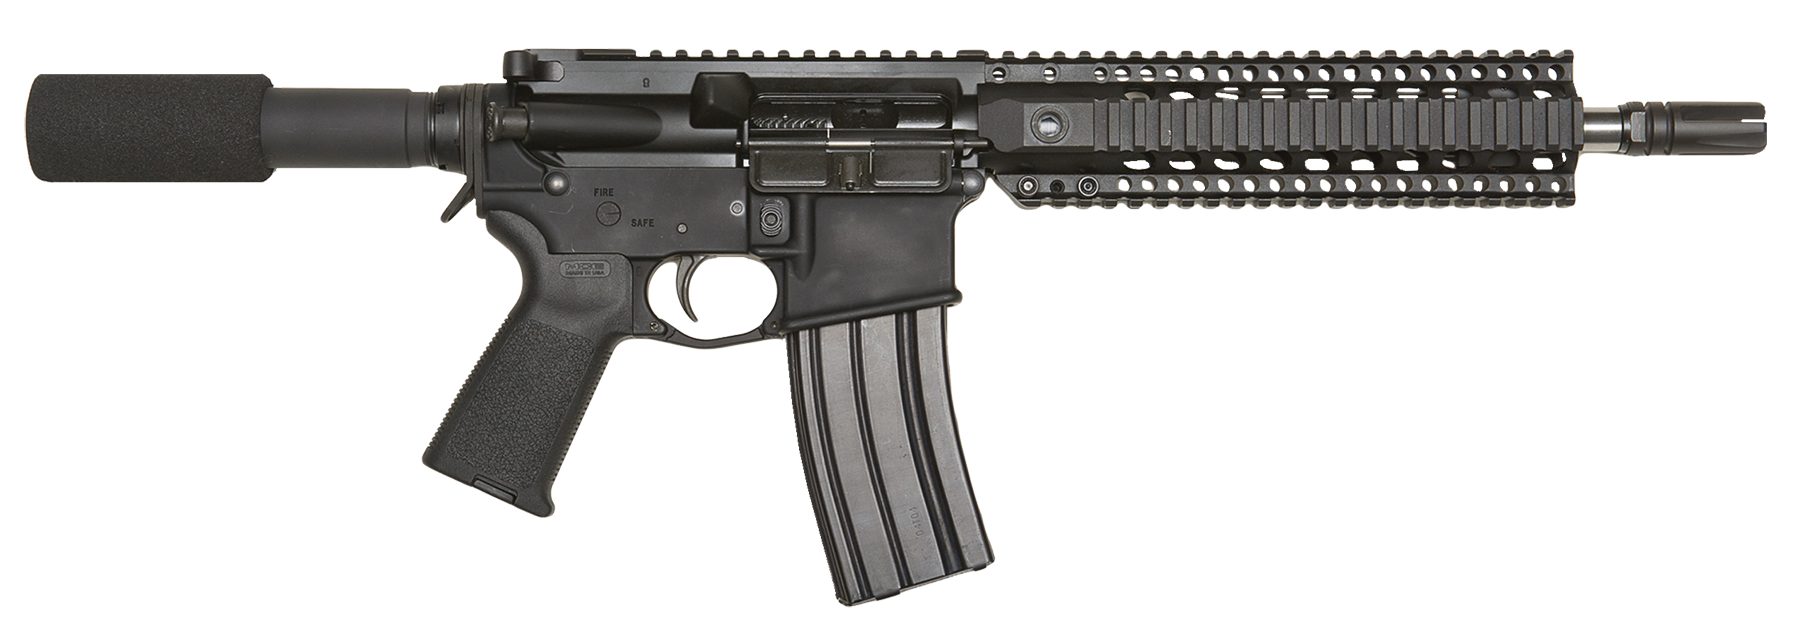 Bushmaster 91022 XM-15 Enhanced Patrolmans AR Pstl SA 223Rem/5.56 10.5